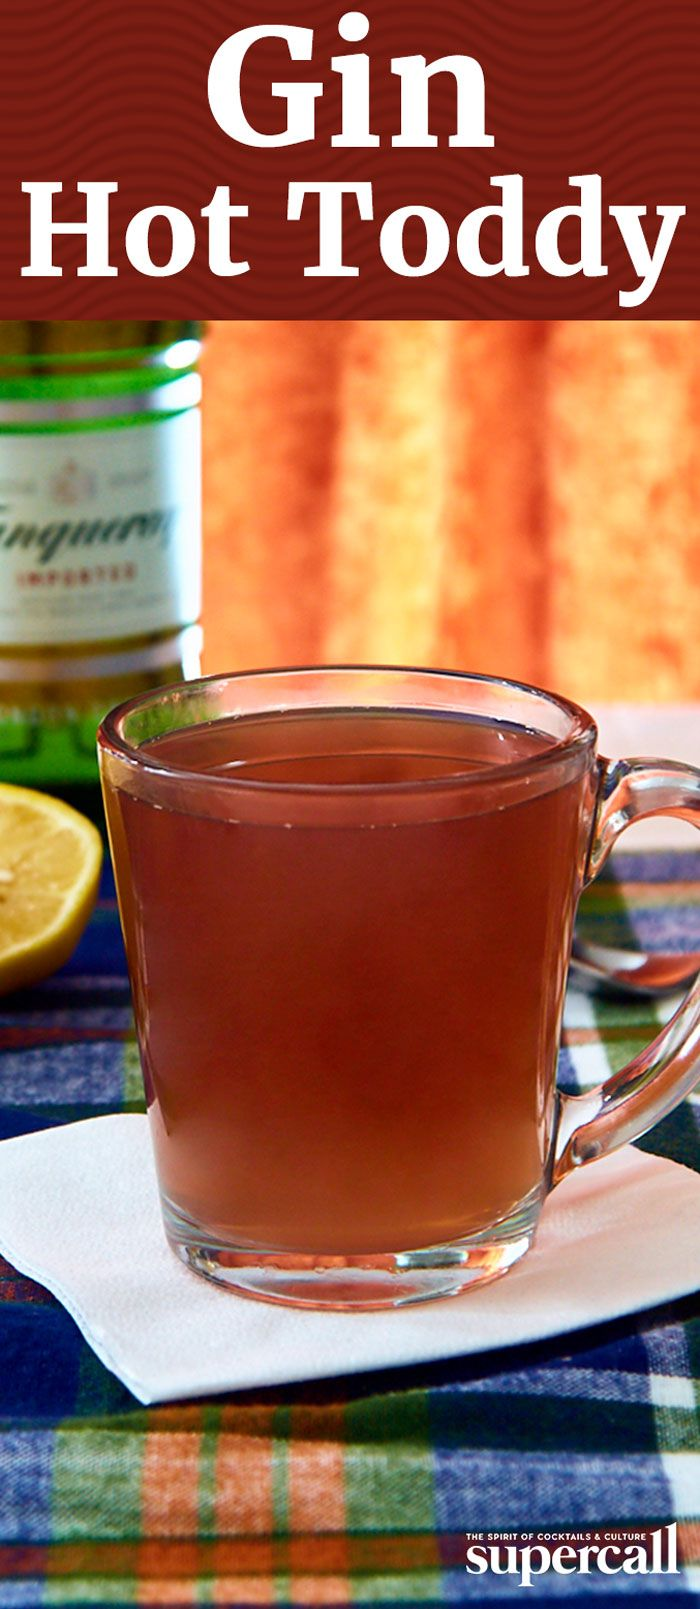 This Hot Toddy variation packs some serious flavor thanks to Old Tom gin, crème de cassis and Becherovka, an herbal liqueur from the Czech Republic.